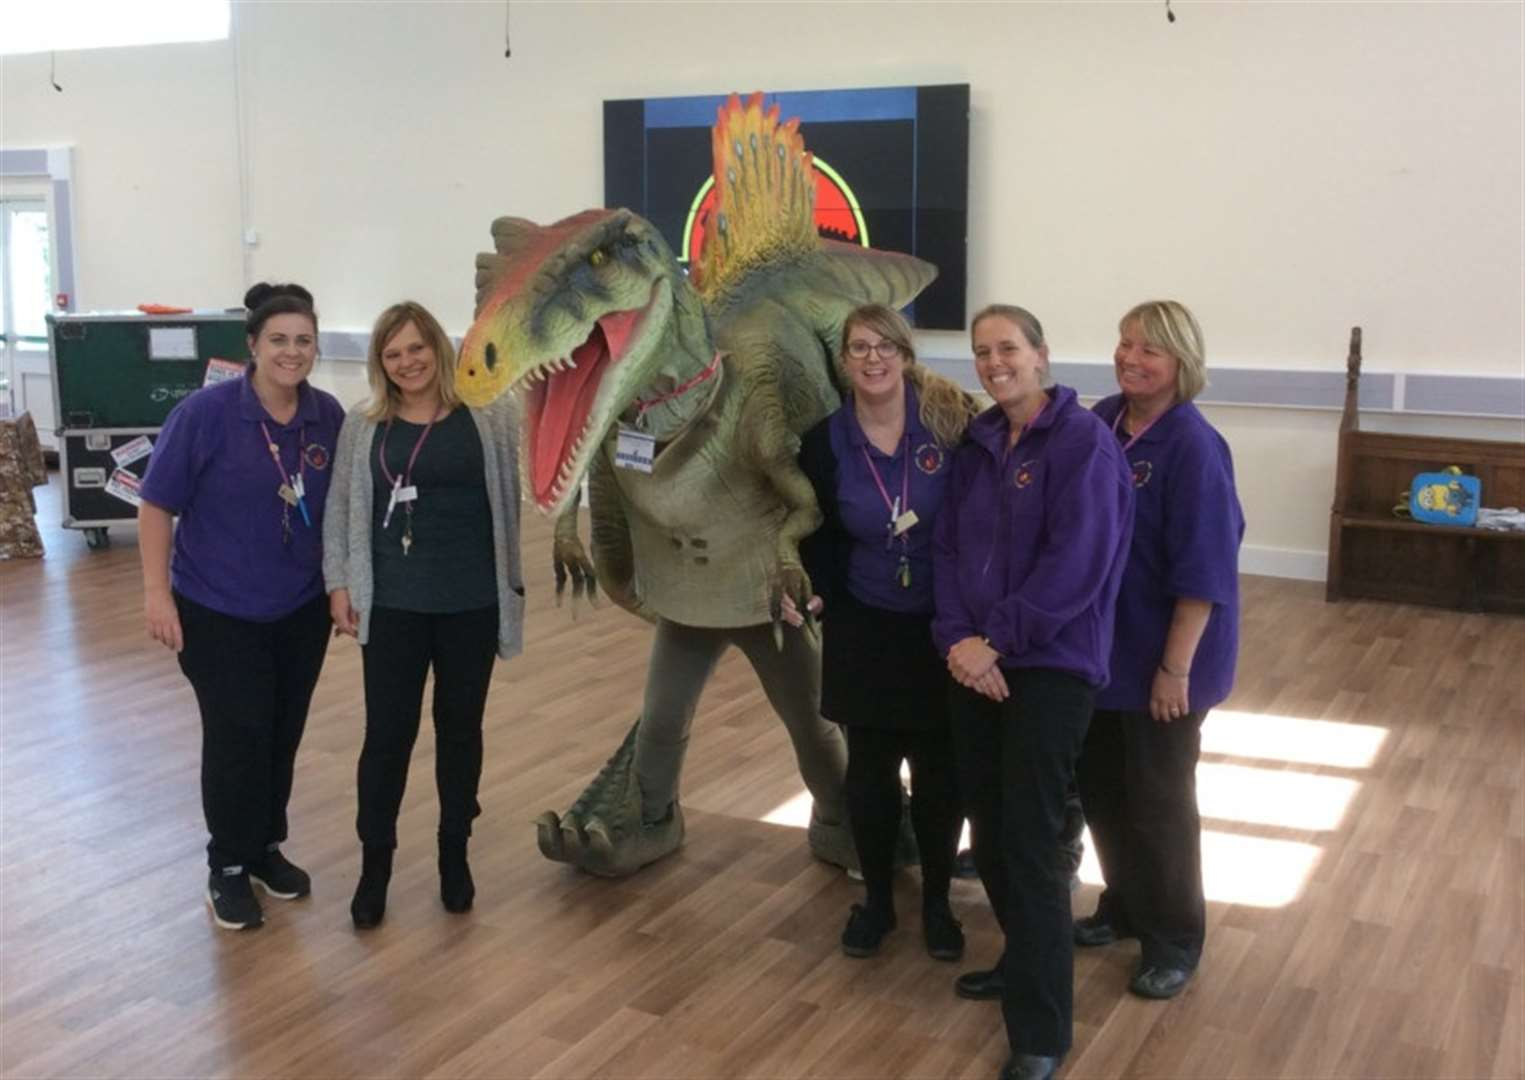 Dino delight for pupils (and teachers!)